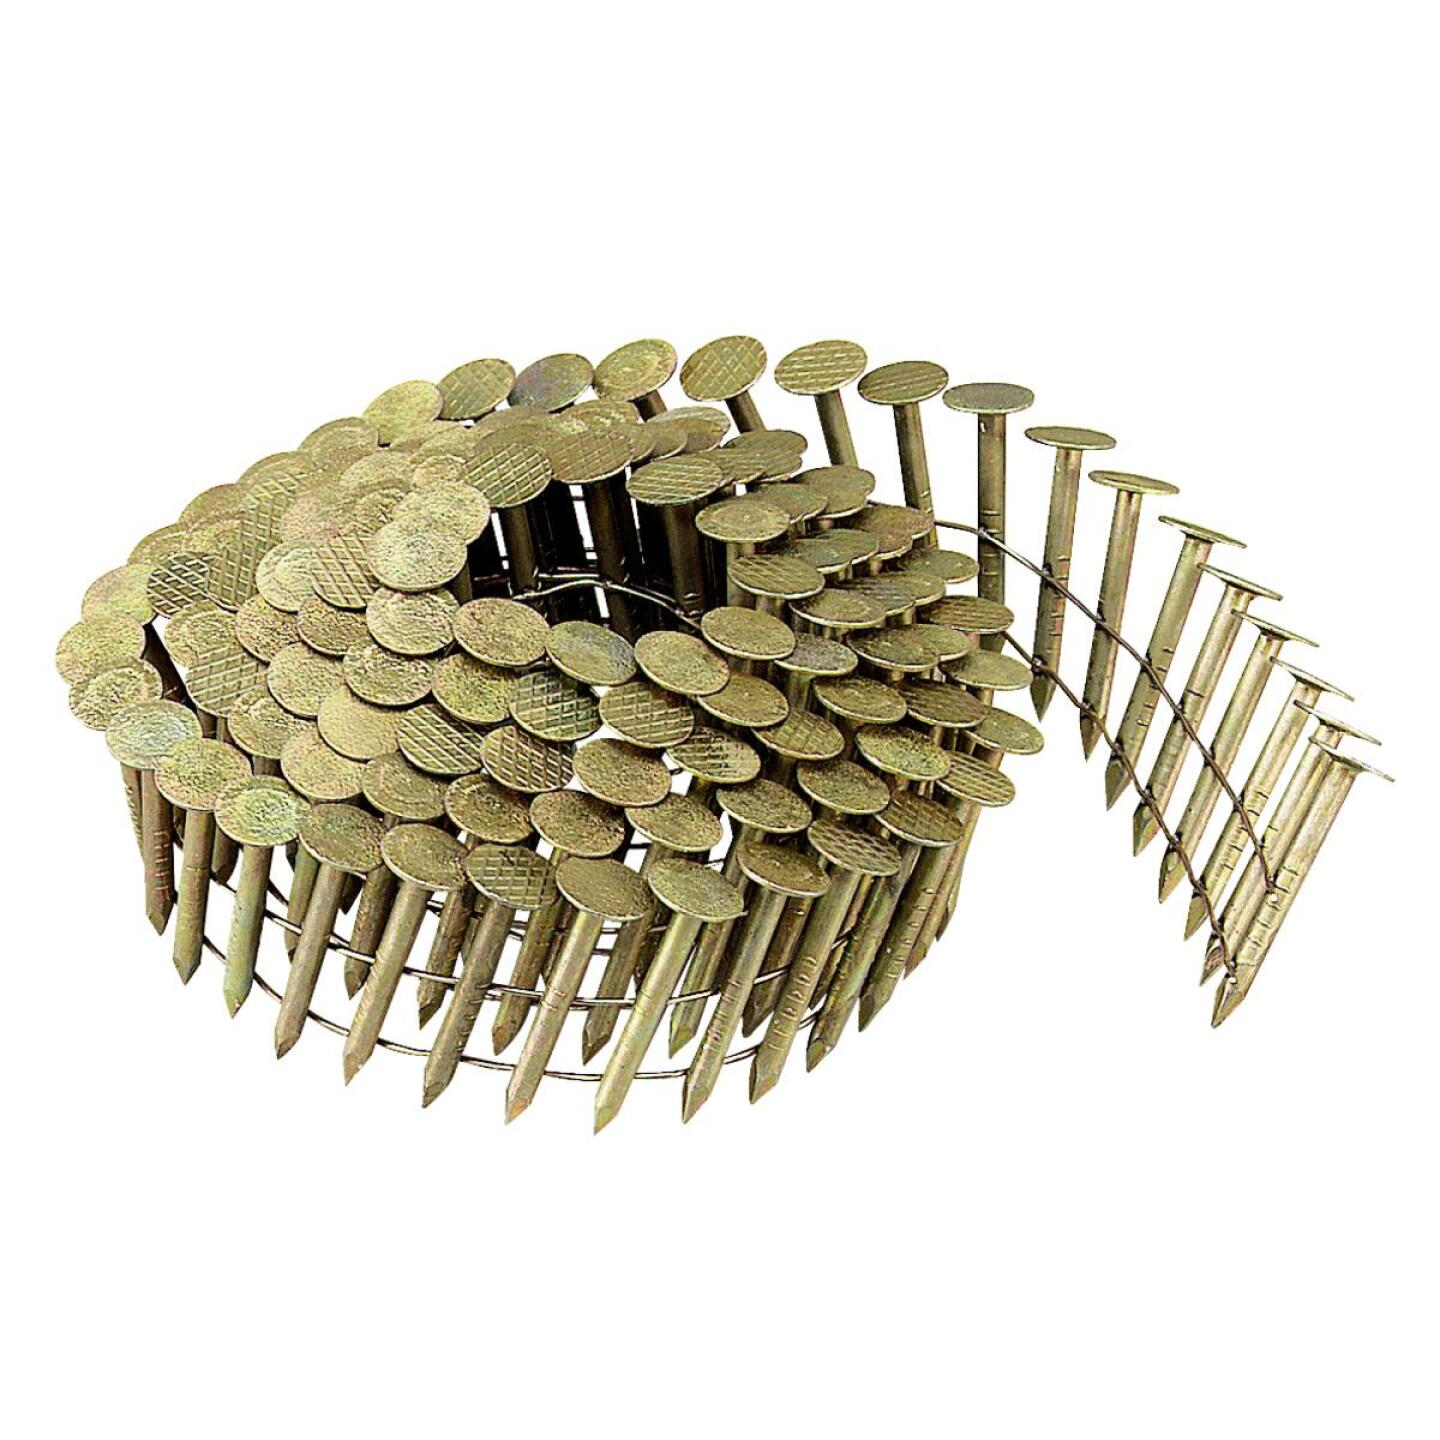 Bostitch 15 Degree Wire Weld Galvanized Coil Roofing Nail, 1-1/4 In. x .120 In. (7200 Ct.) Image 2